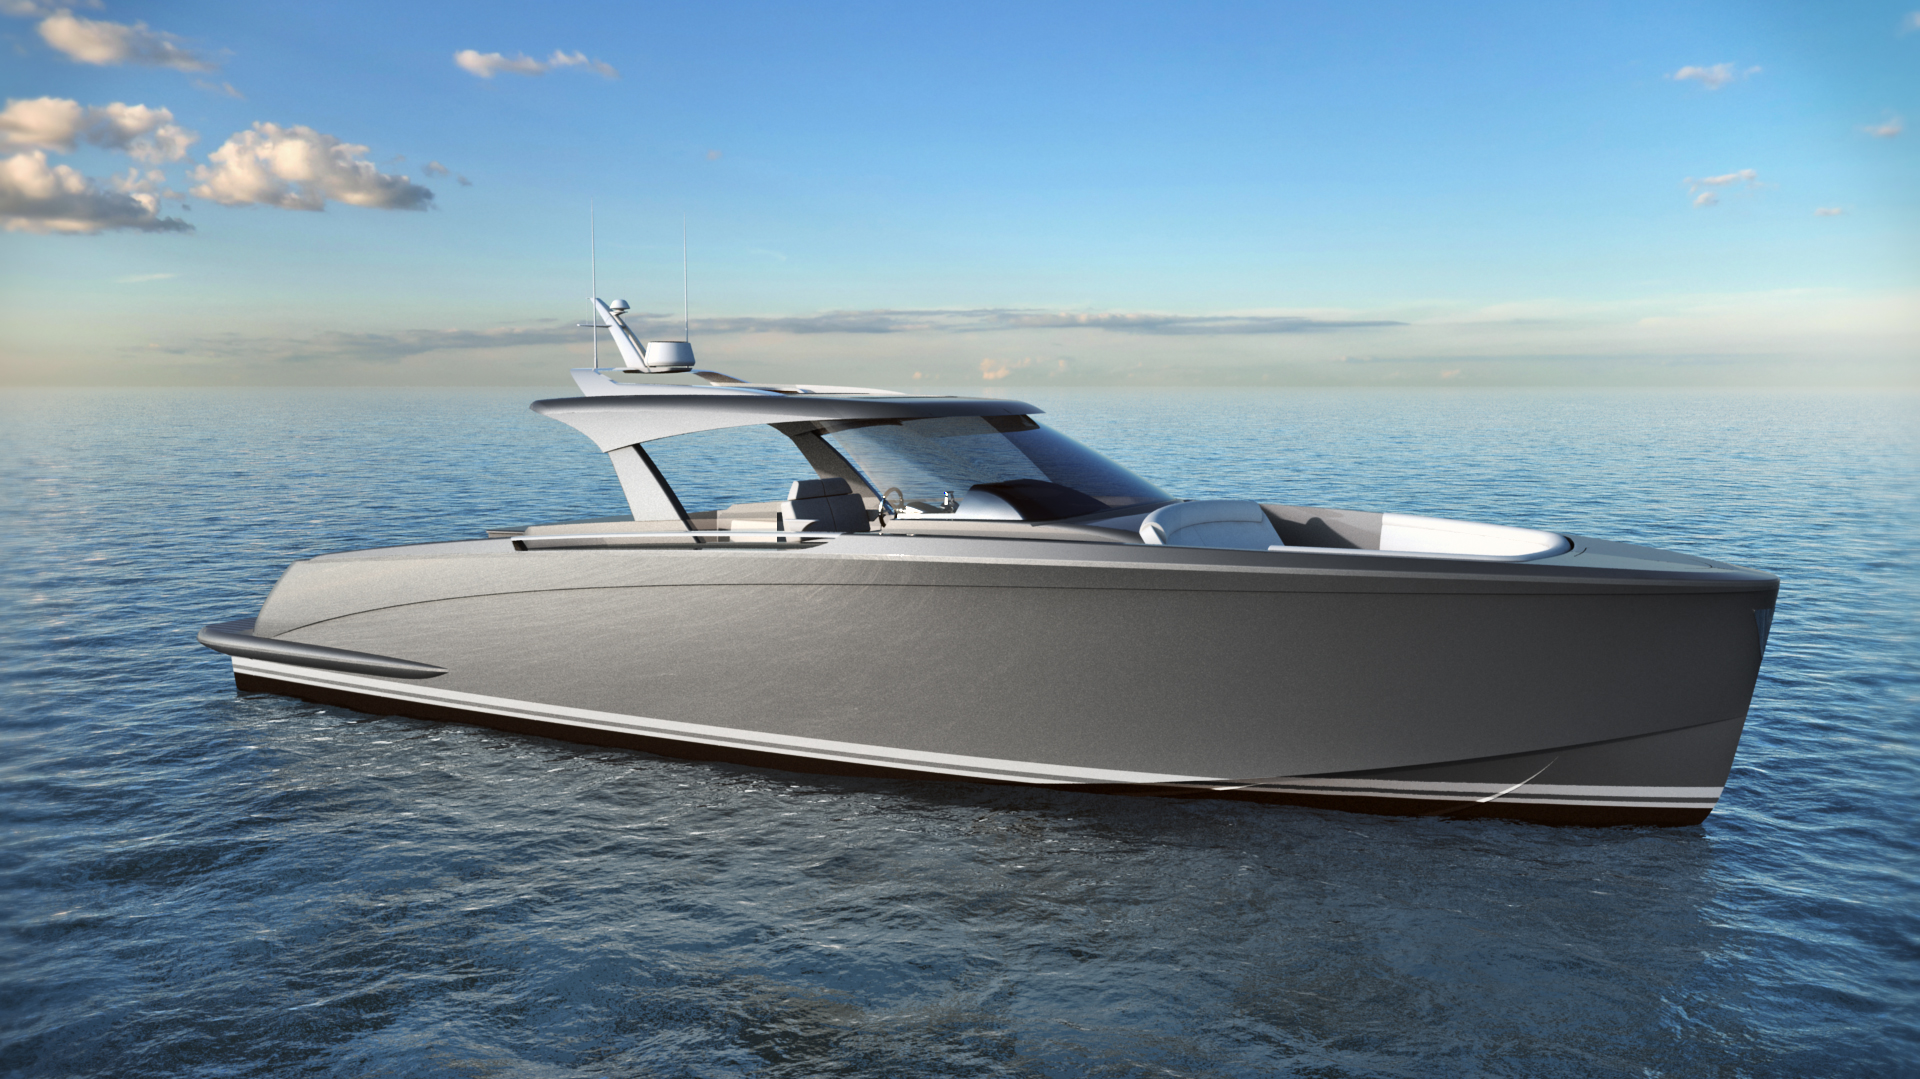 Pictures New Ocean Advocacy Yacht Company To Launch At Miami Boat Show Ybw